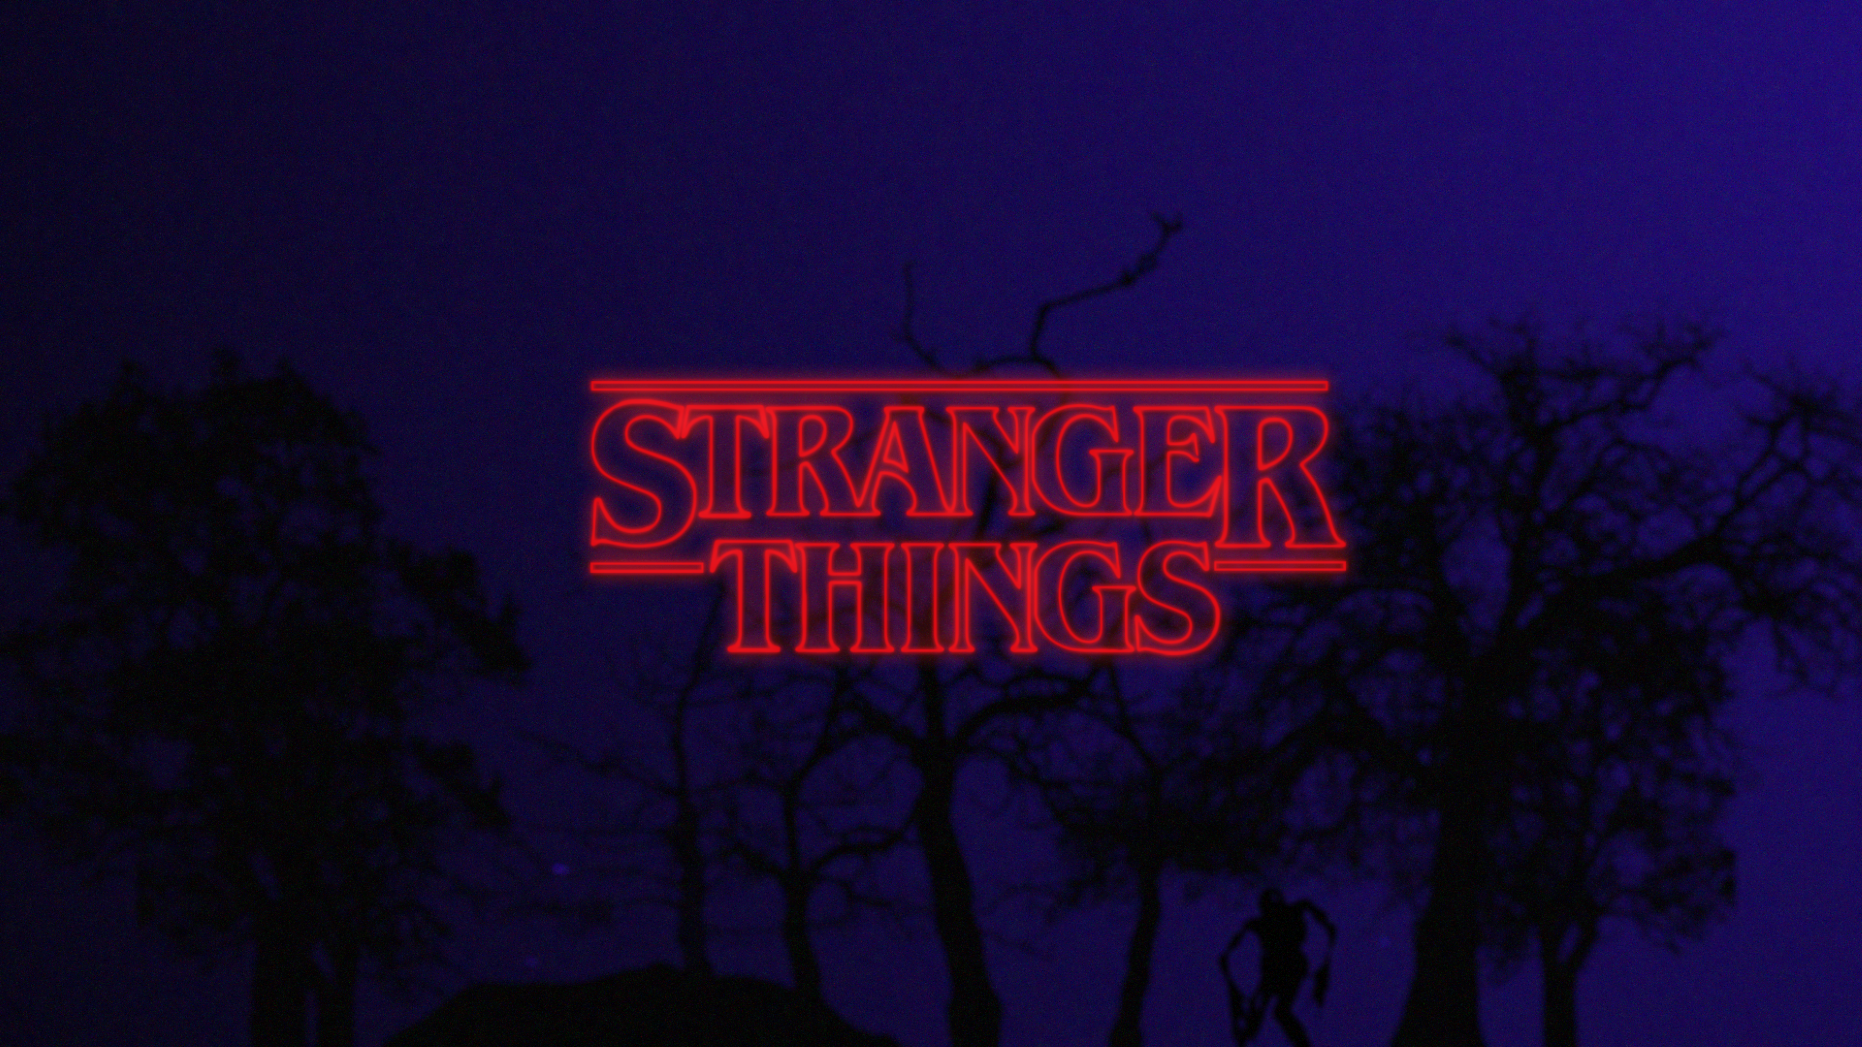 B.f Photos All >> Stranger Things Wallpaper by FoxyPlush on DeviantArt